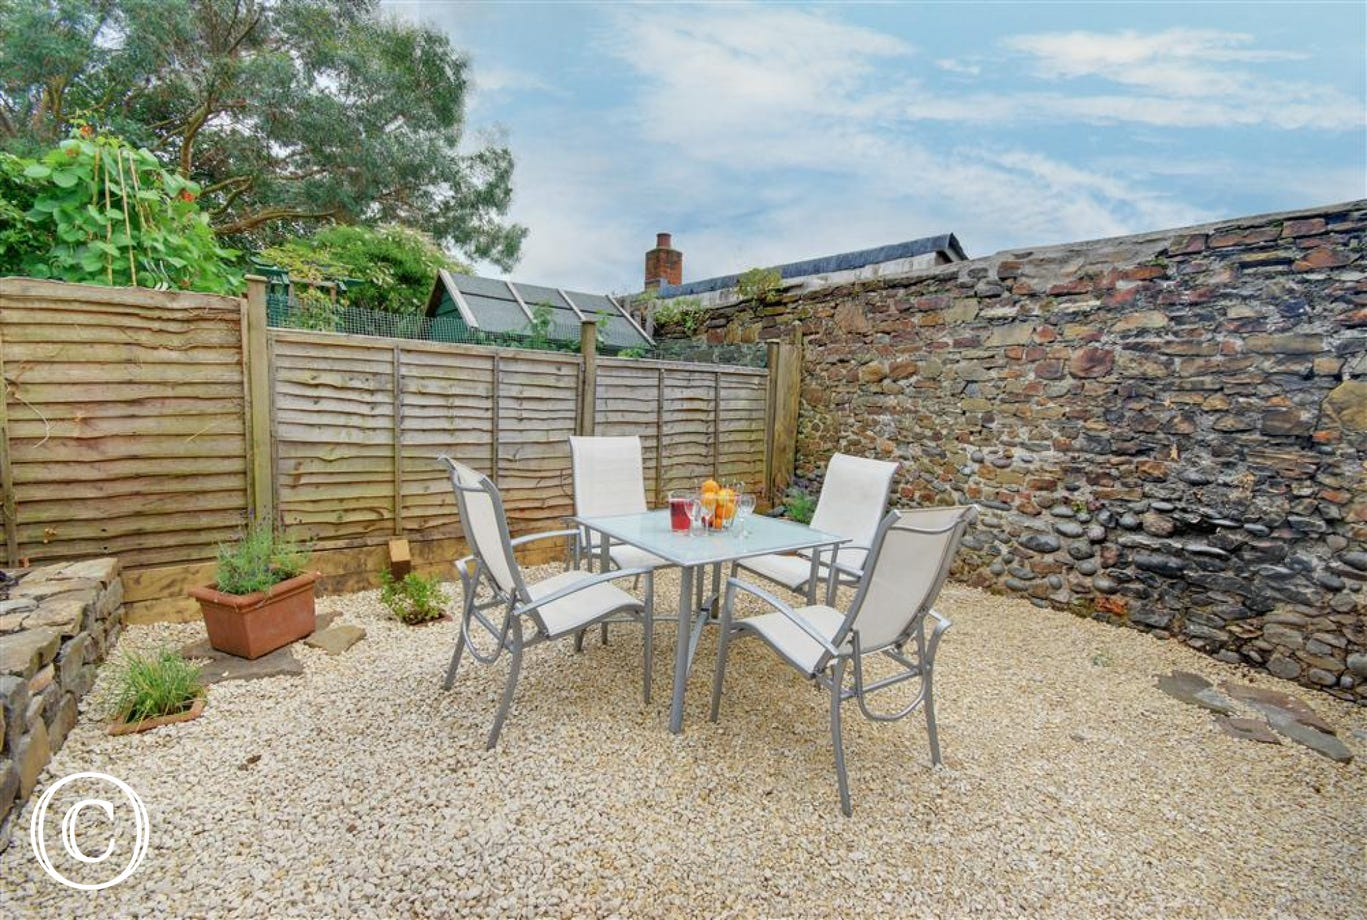 Relax with friends and family in this sun trap and enjoy al fresco dining